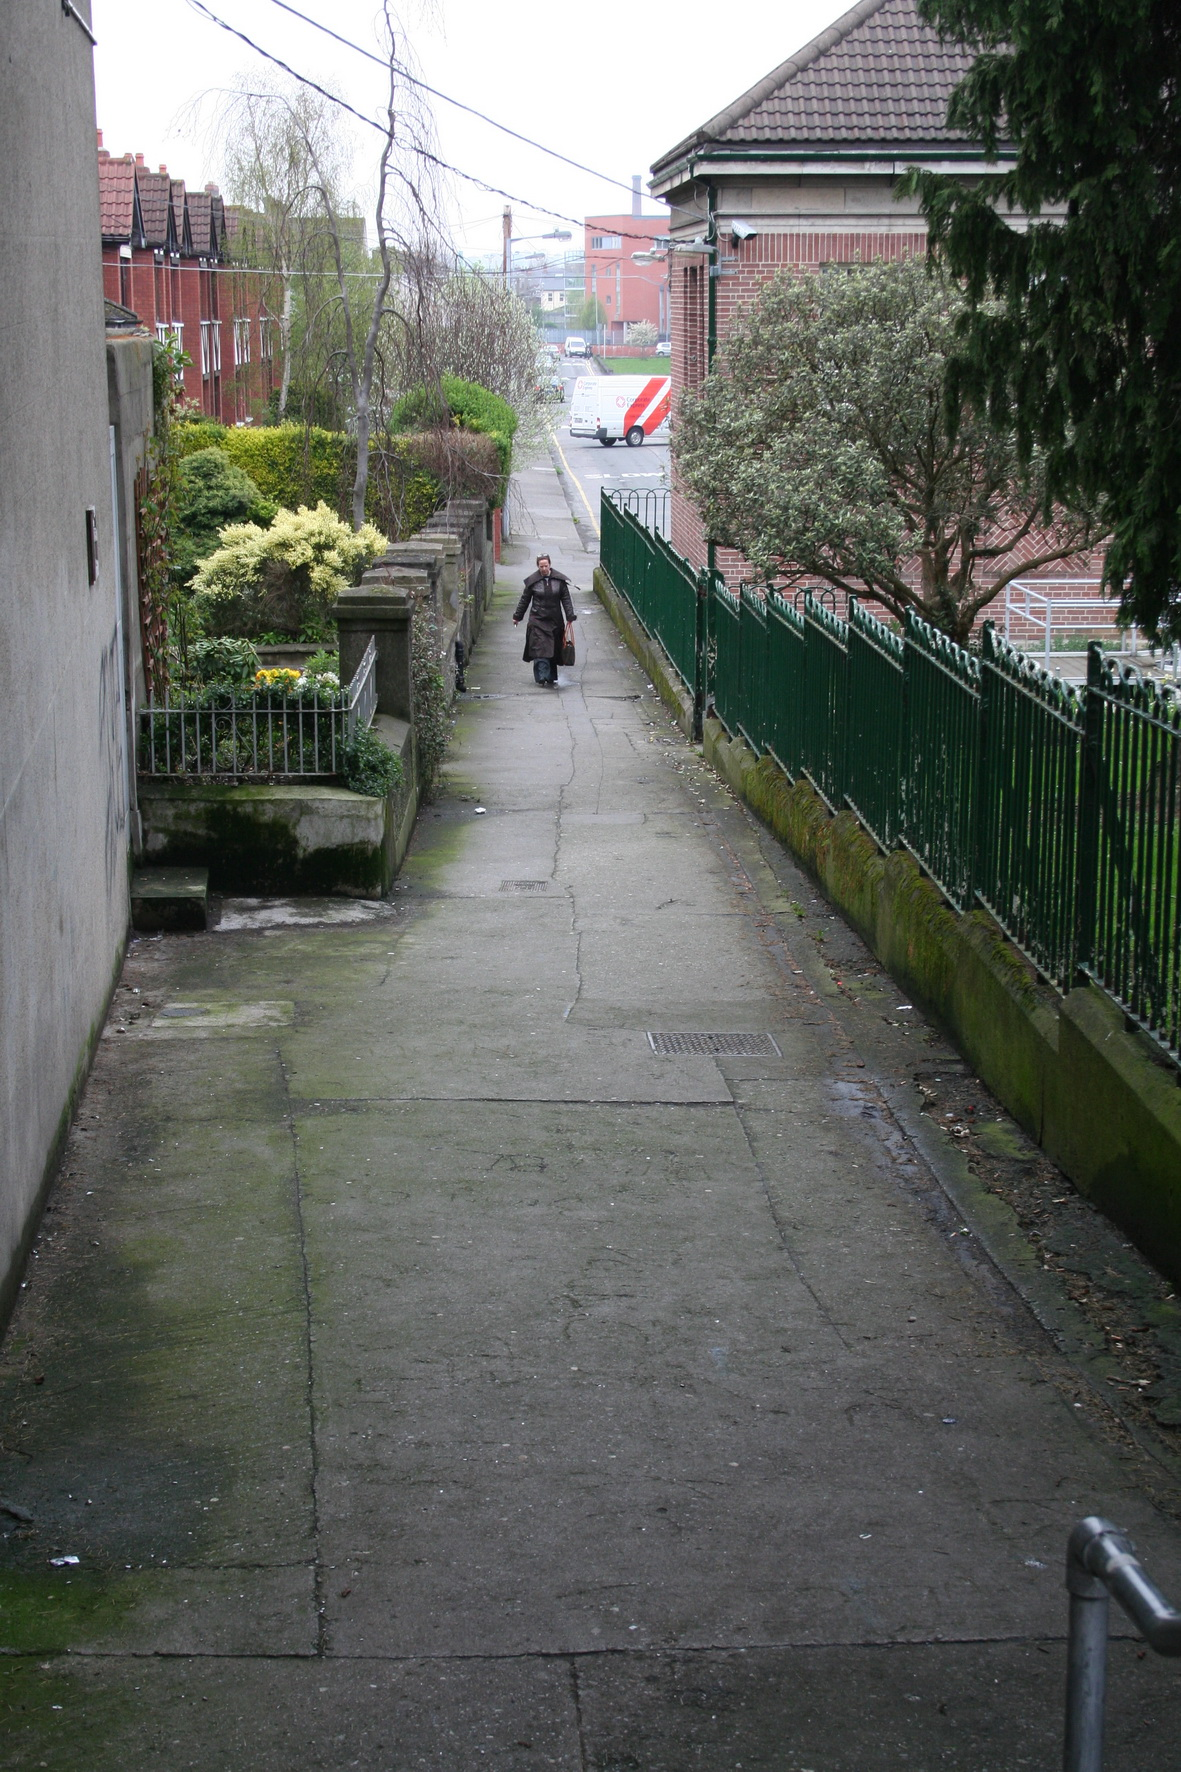 Looking north up the lane 2